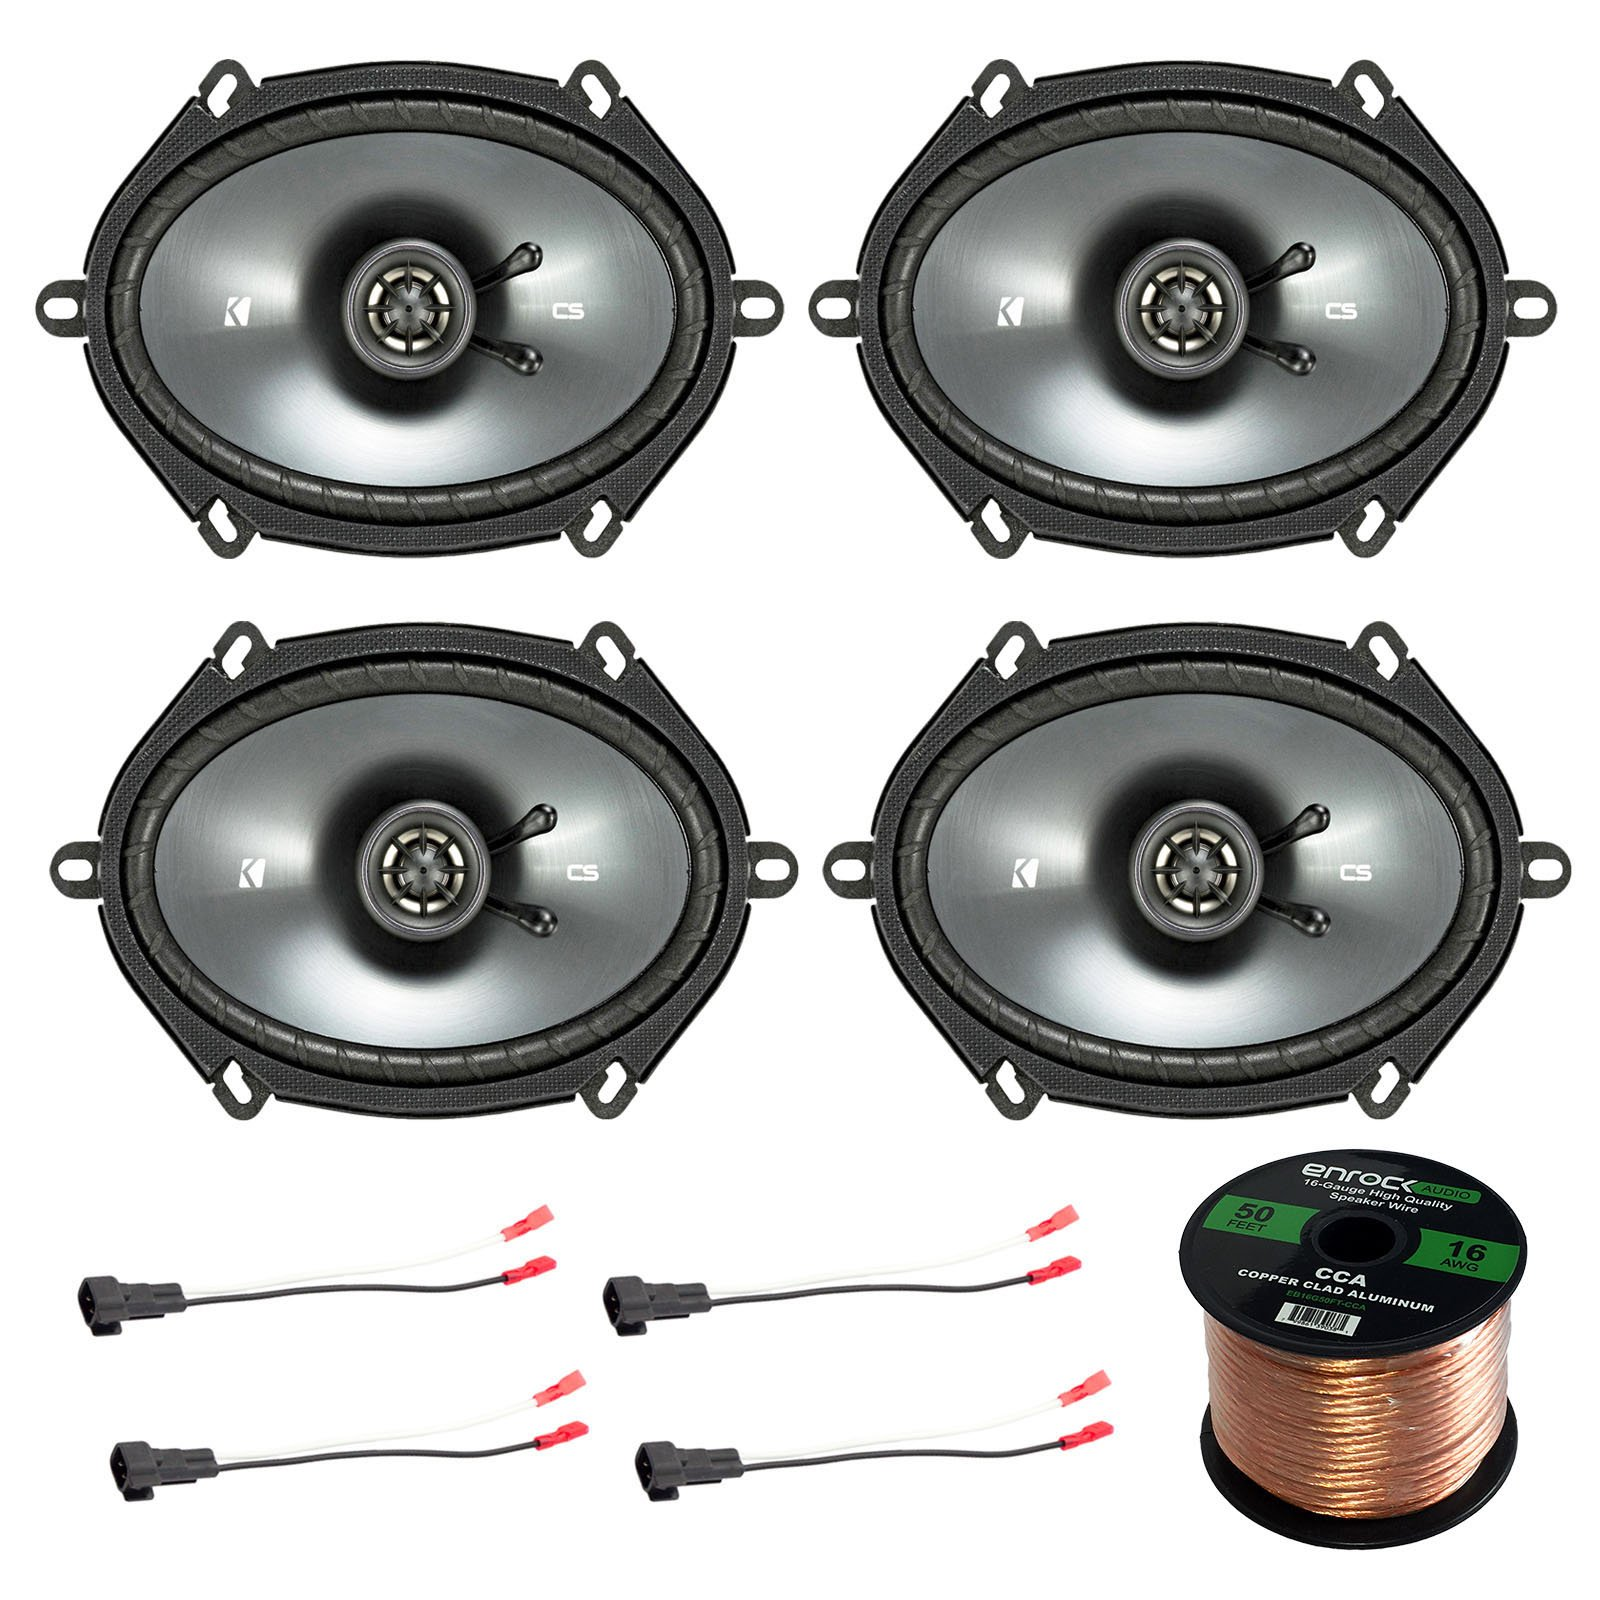 Car Speaker Set Combo Of 4 Kicker 40CS684 6x8'' Inch 450W 2-Way Car Coaxial Stereo Speakers + 4 Metra 72-5600 Speaker Connector for Ford, Lincoln, Mazda, Mercury, + Enrock 50ft 16g Speaker Wire by Enrock Kicker Metra